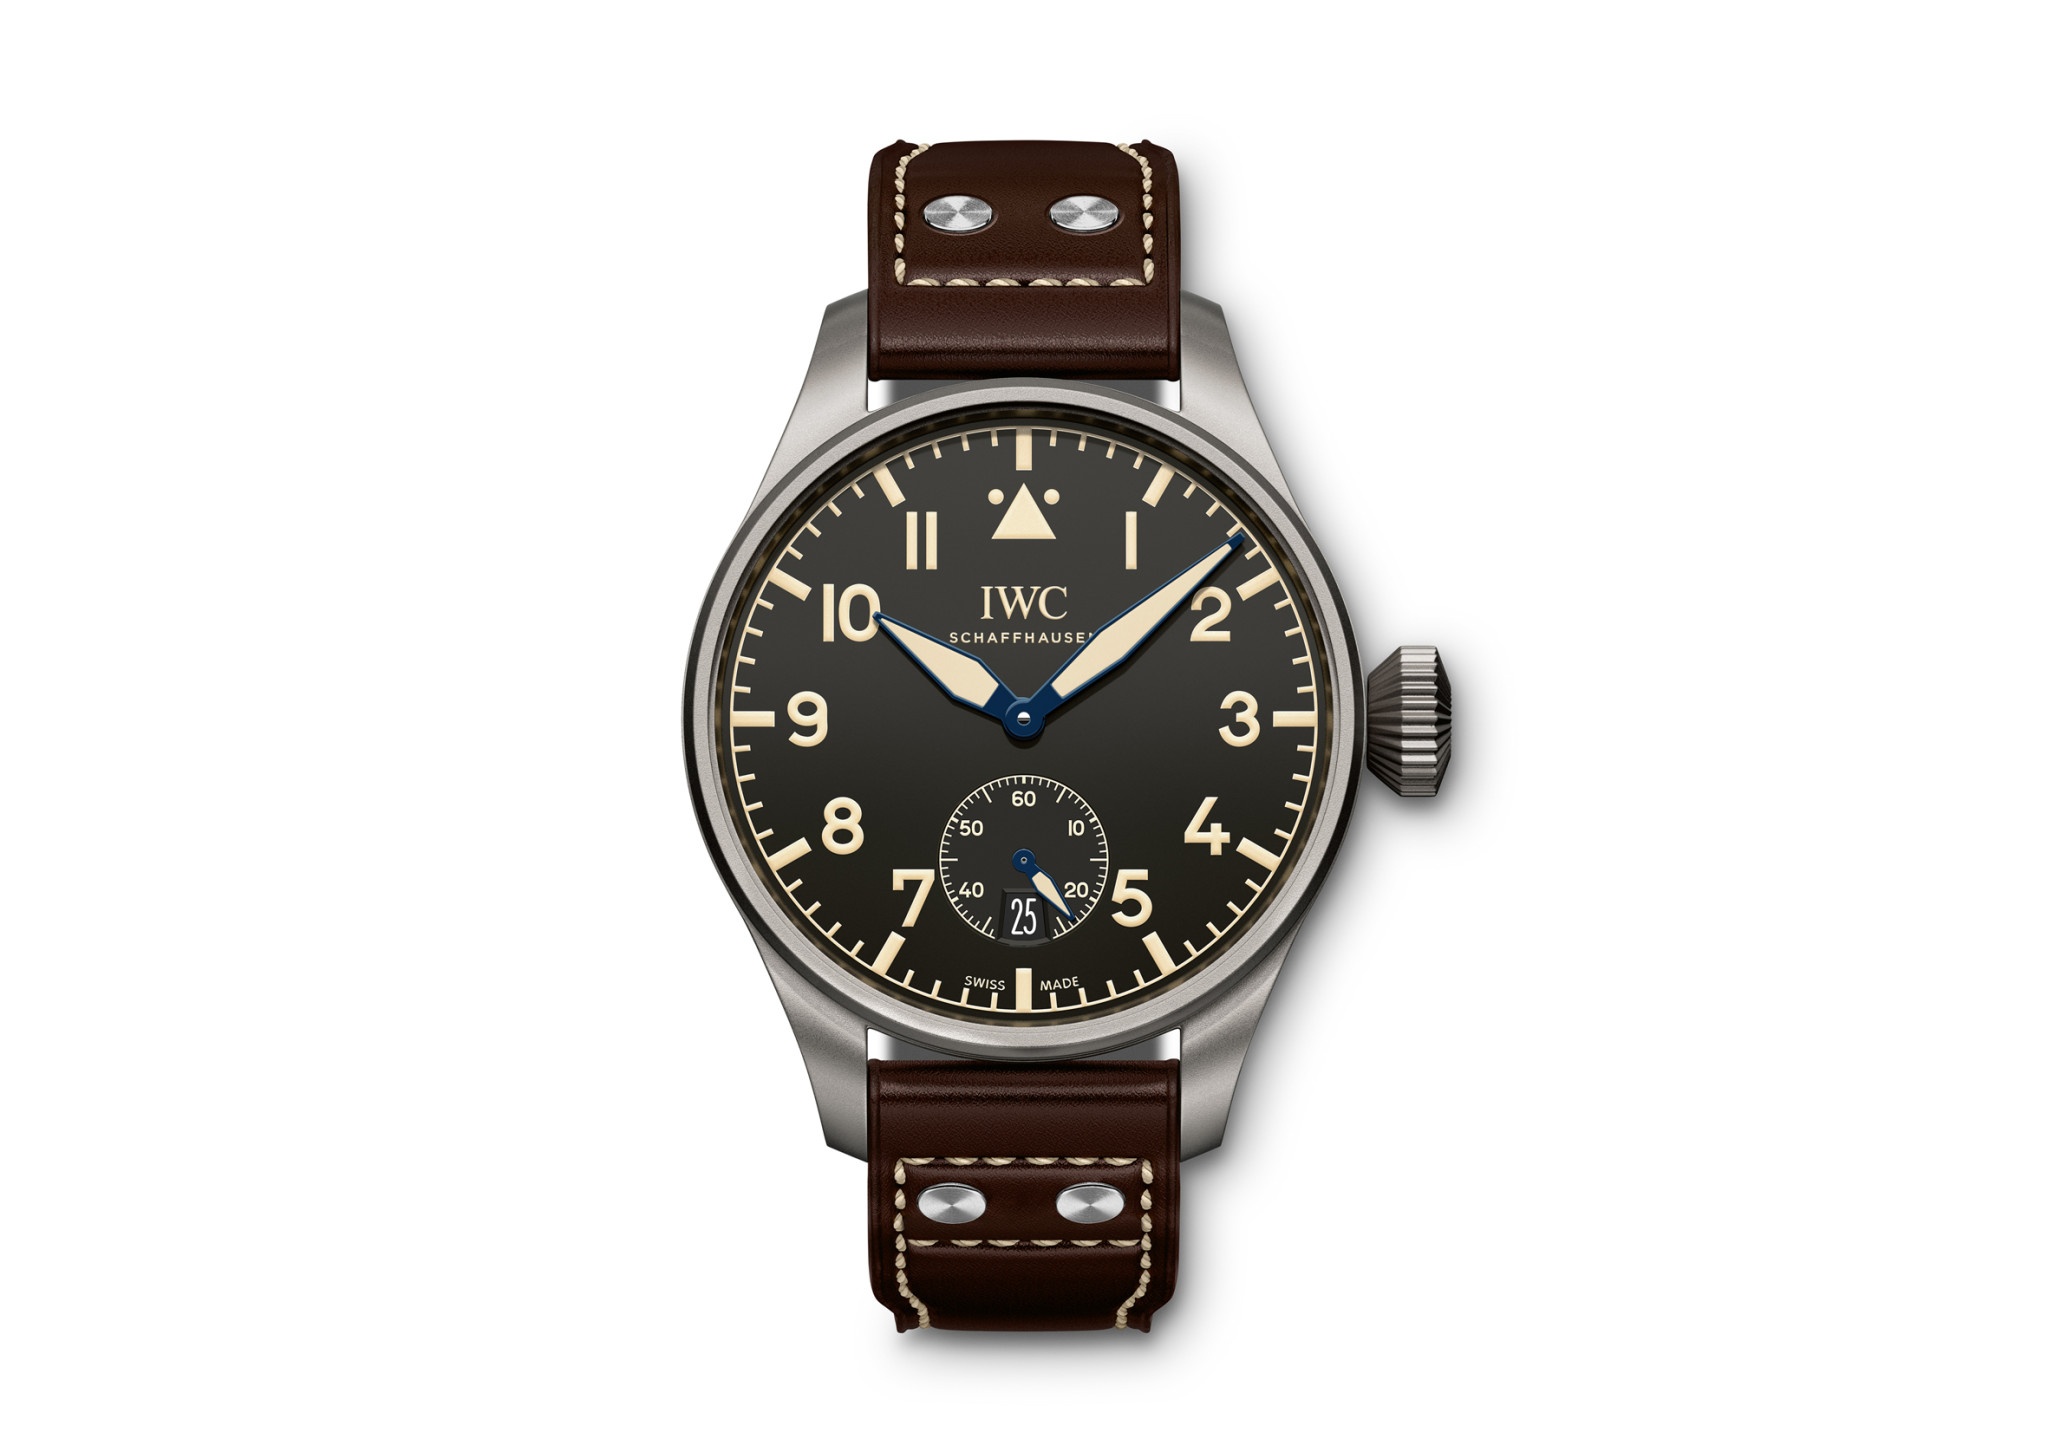 f1783a8bc97 IWC to reveal revamped Pilot s collection at SIHH - WatchPro